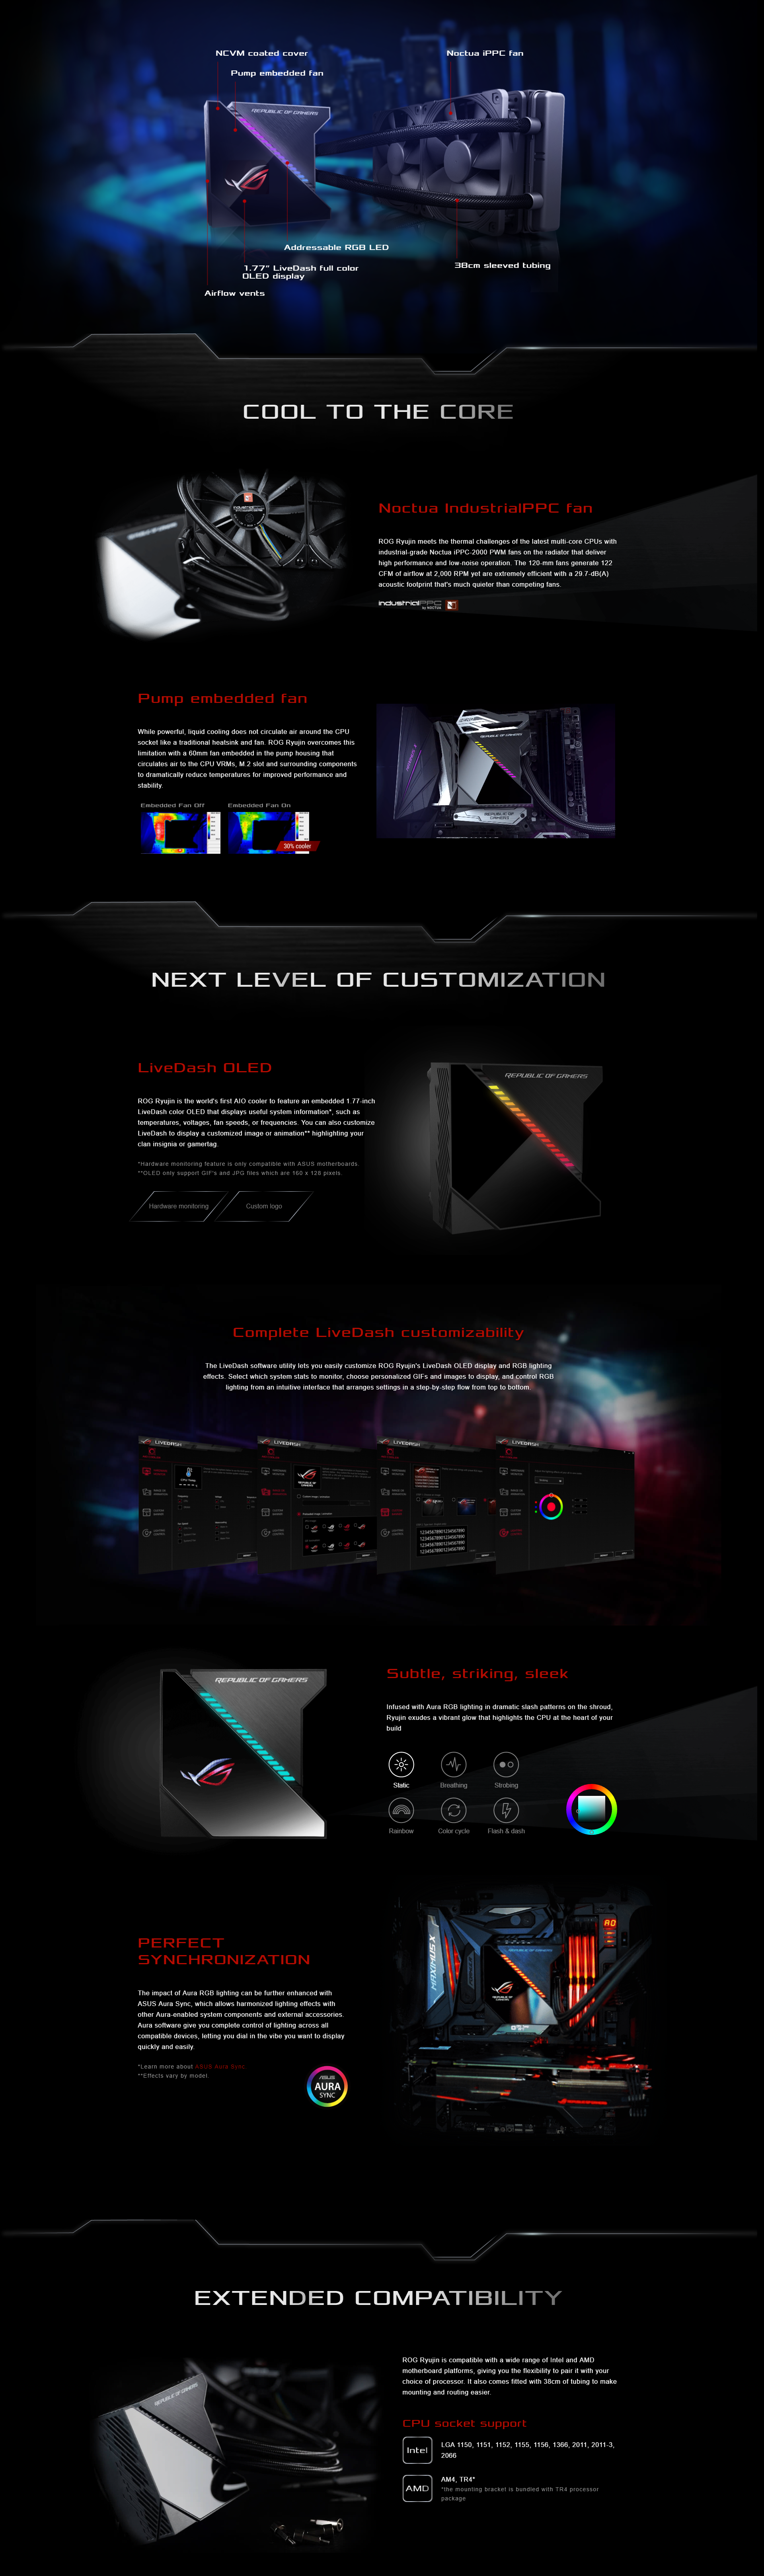 A large marketing image providing additional information about the product ASUS ROG RYUJIN 240 RGB AIO Liquid Cooler - Additional alt info not provided